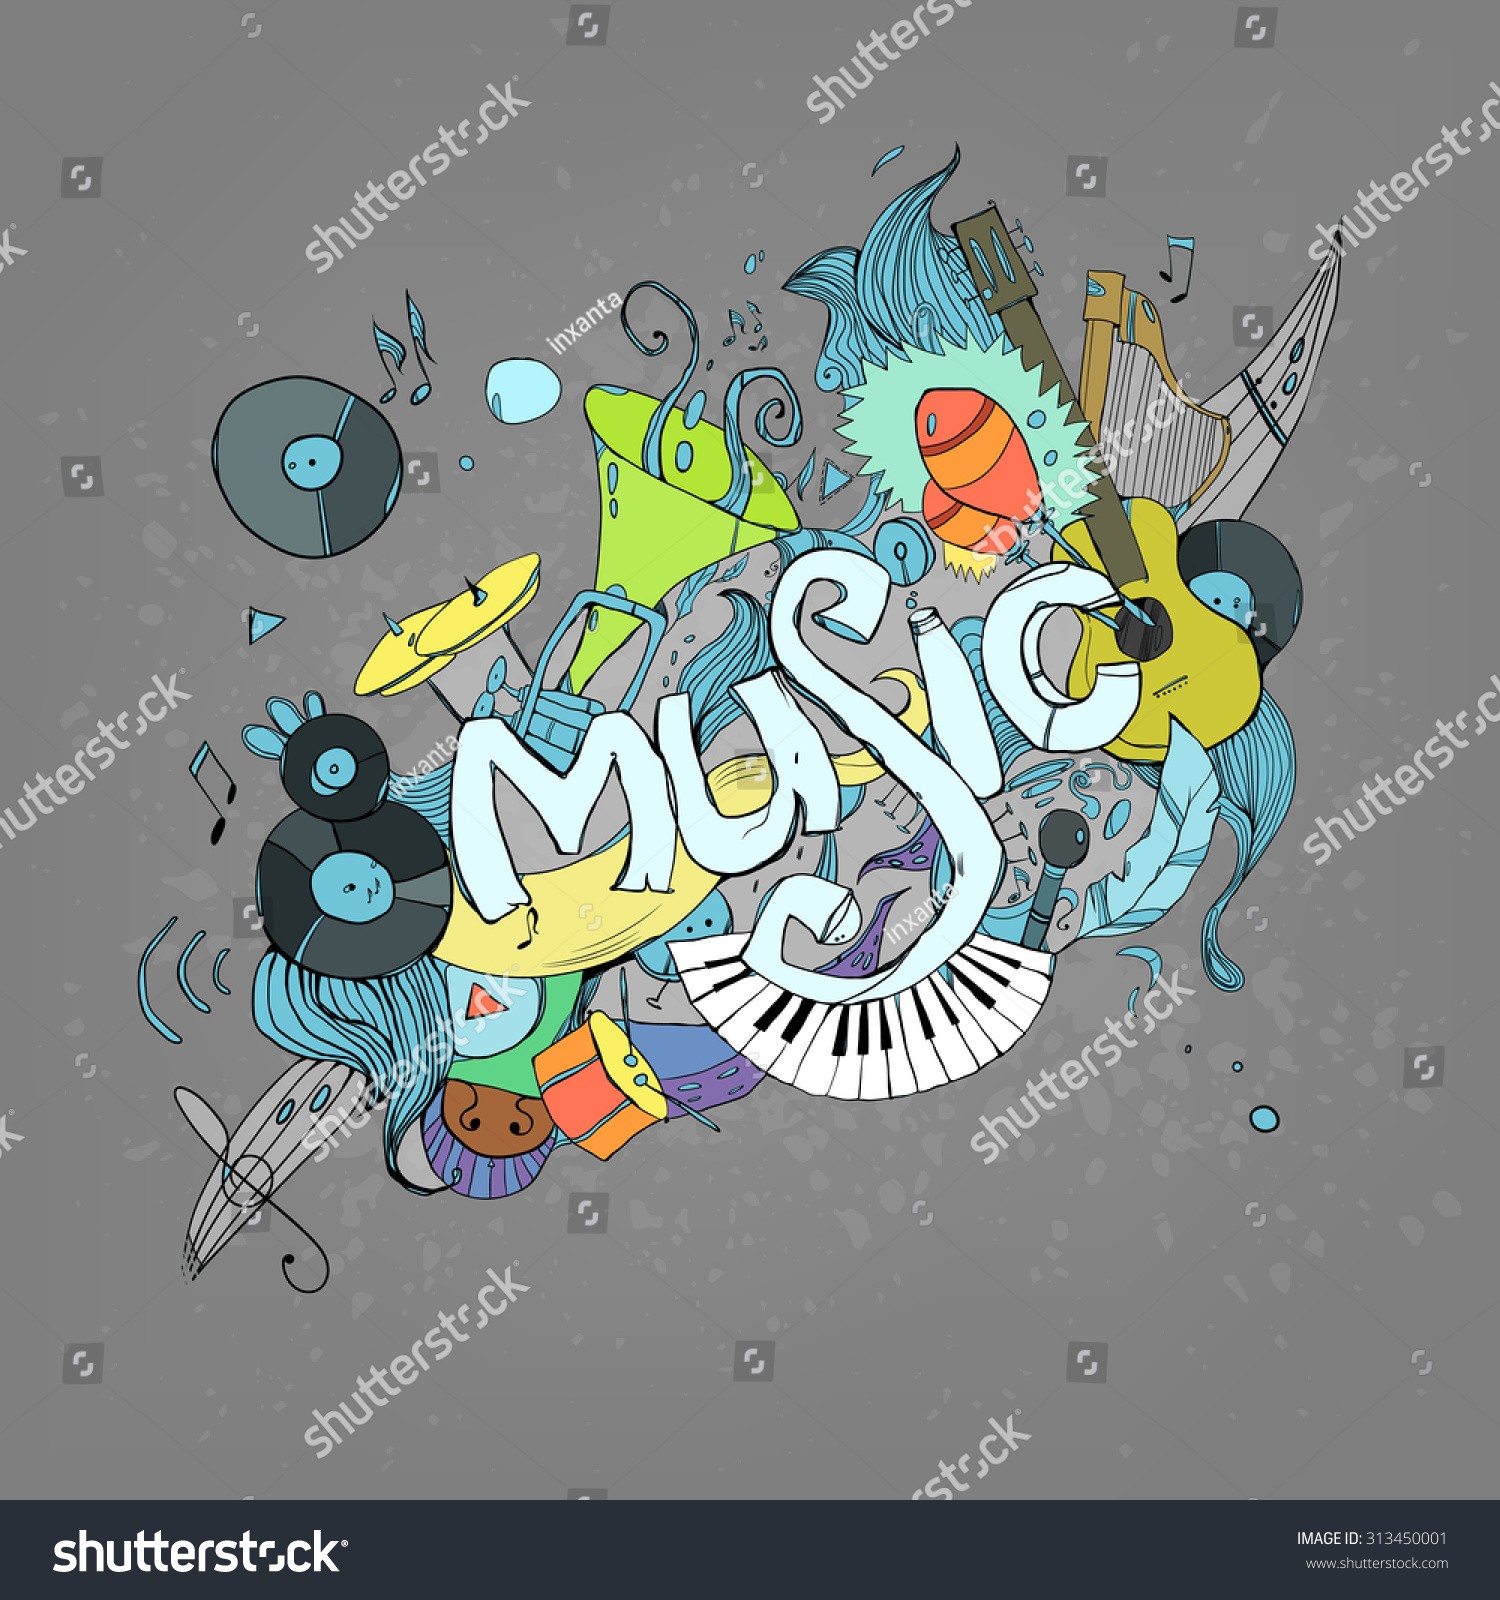 Stock vector music hand lettering and doodles elements - Music Hand Lettering And Doodles Elements Background Vector Illustration